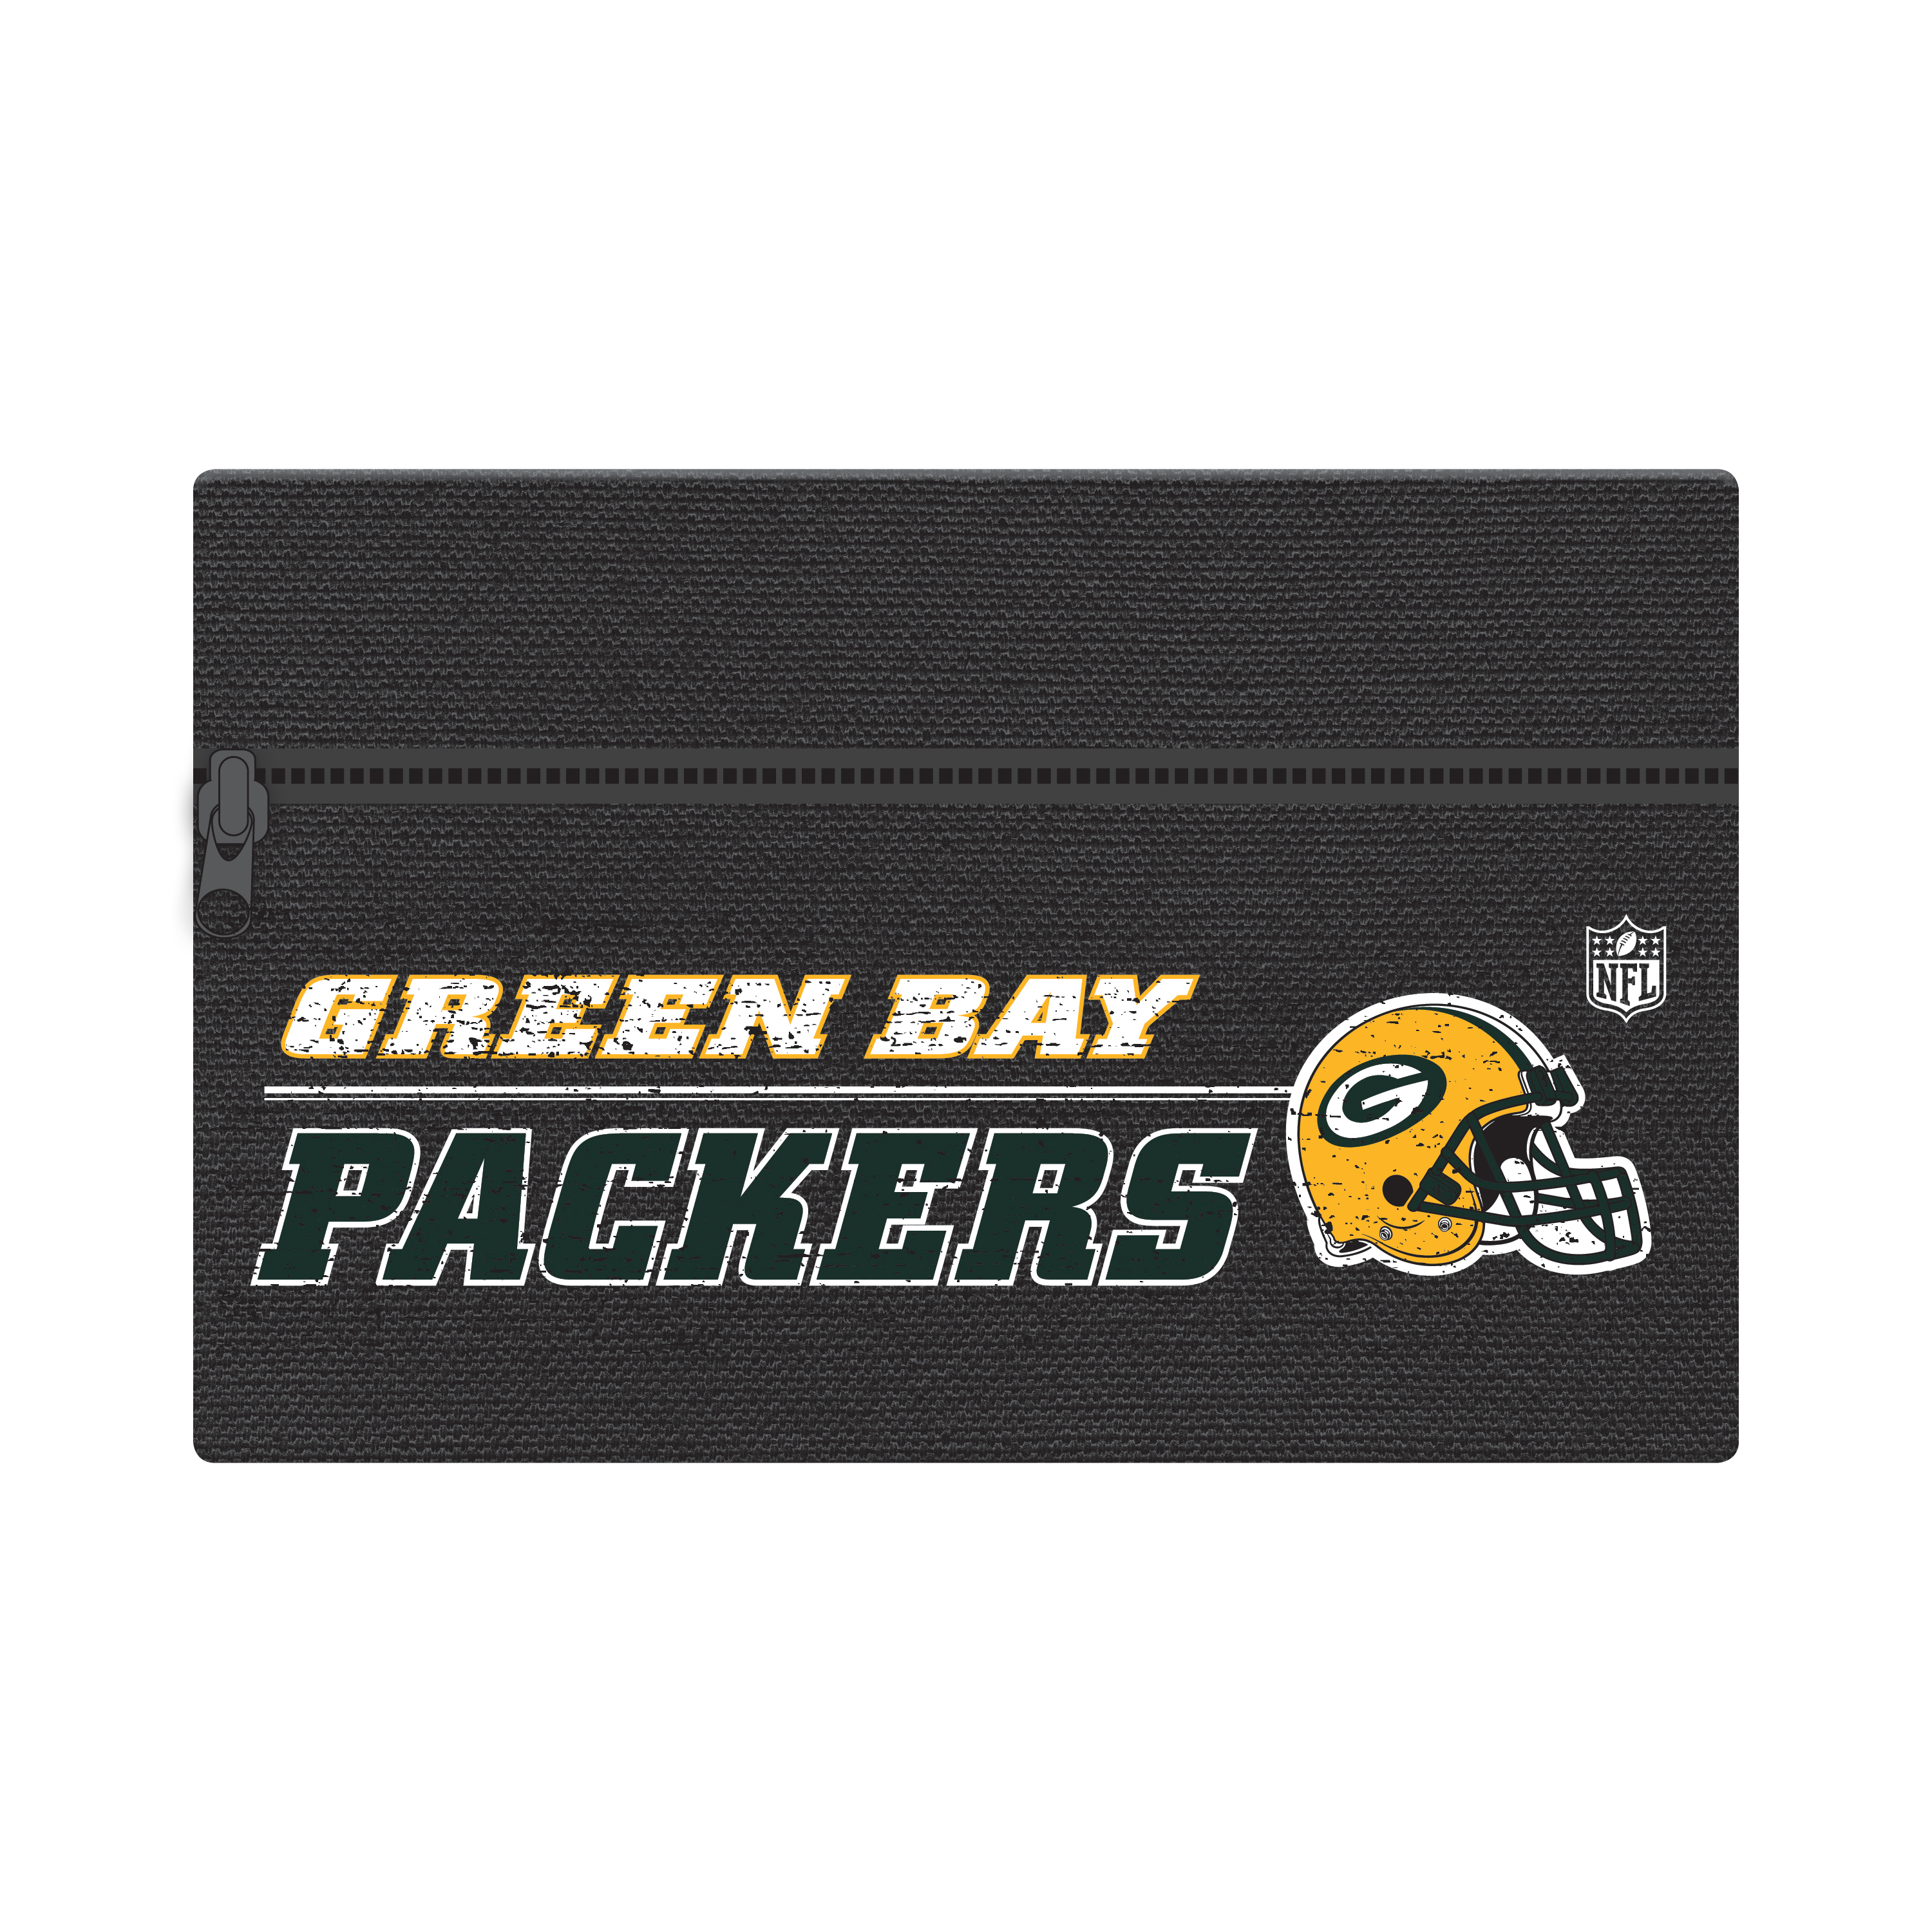 "NFL Green Bay Packers Zippered Cotton Canvas Pencil Pouch, 7.5"" by 4.625"""